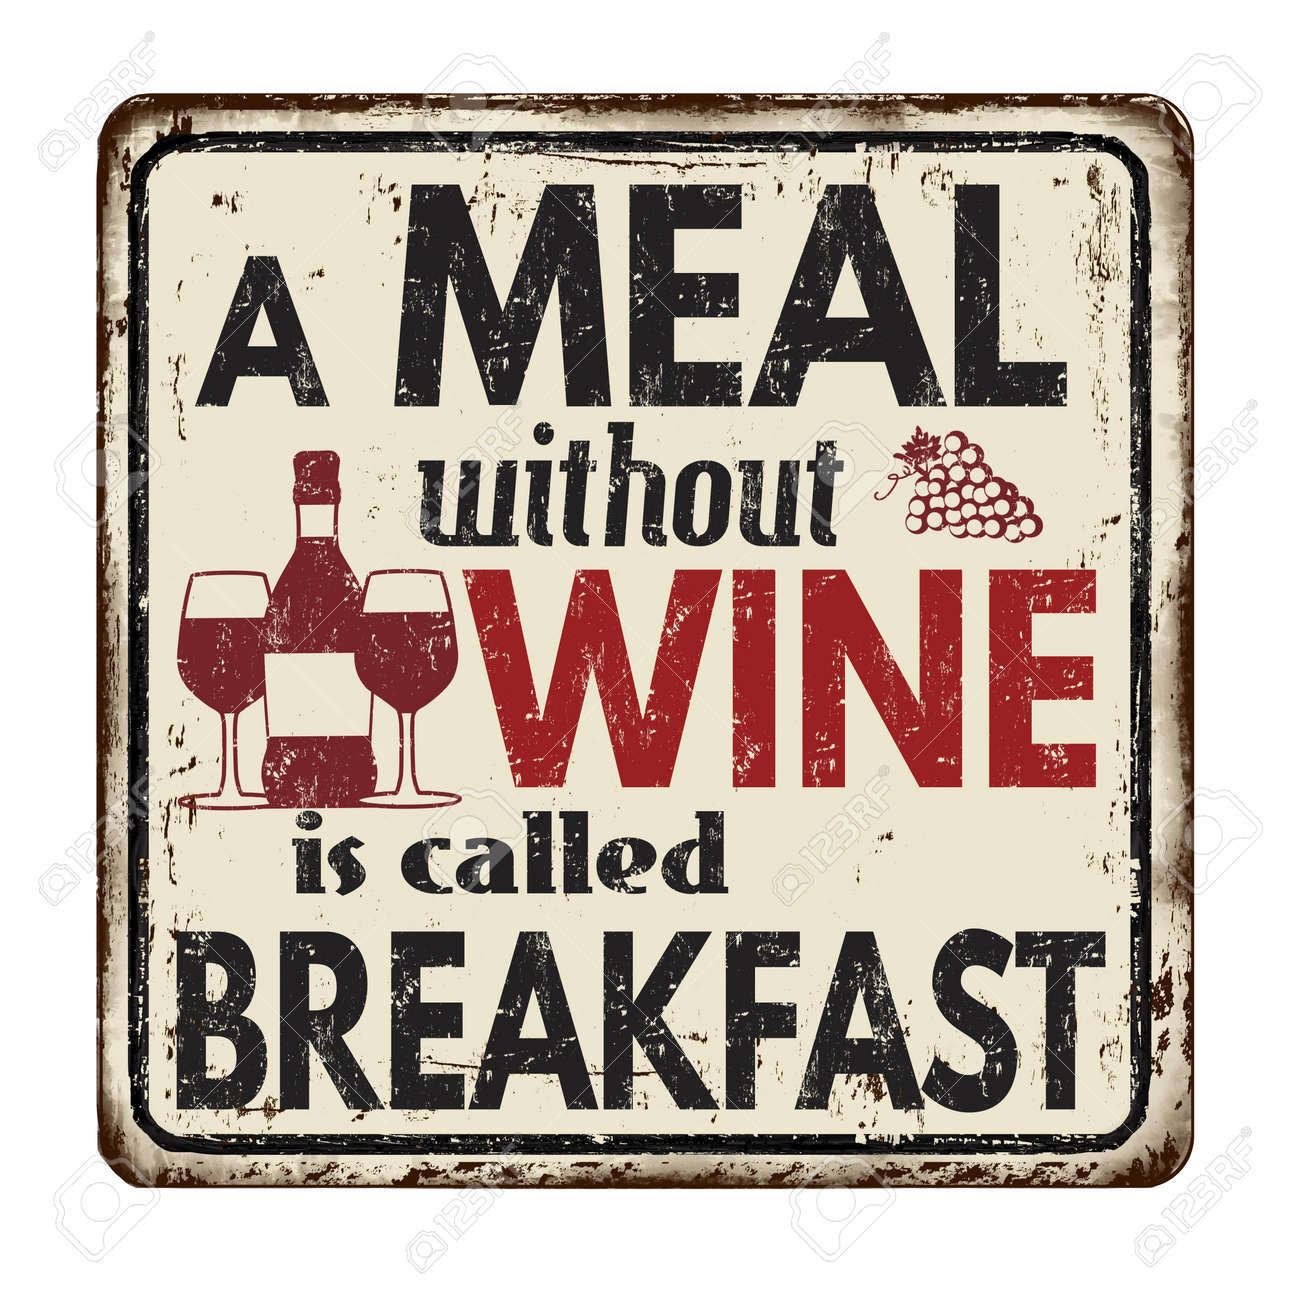 A meal without wine is called breakfast vintage rusty metal sign on a white background, vector illustration - 125583732